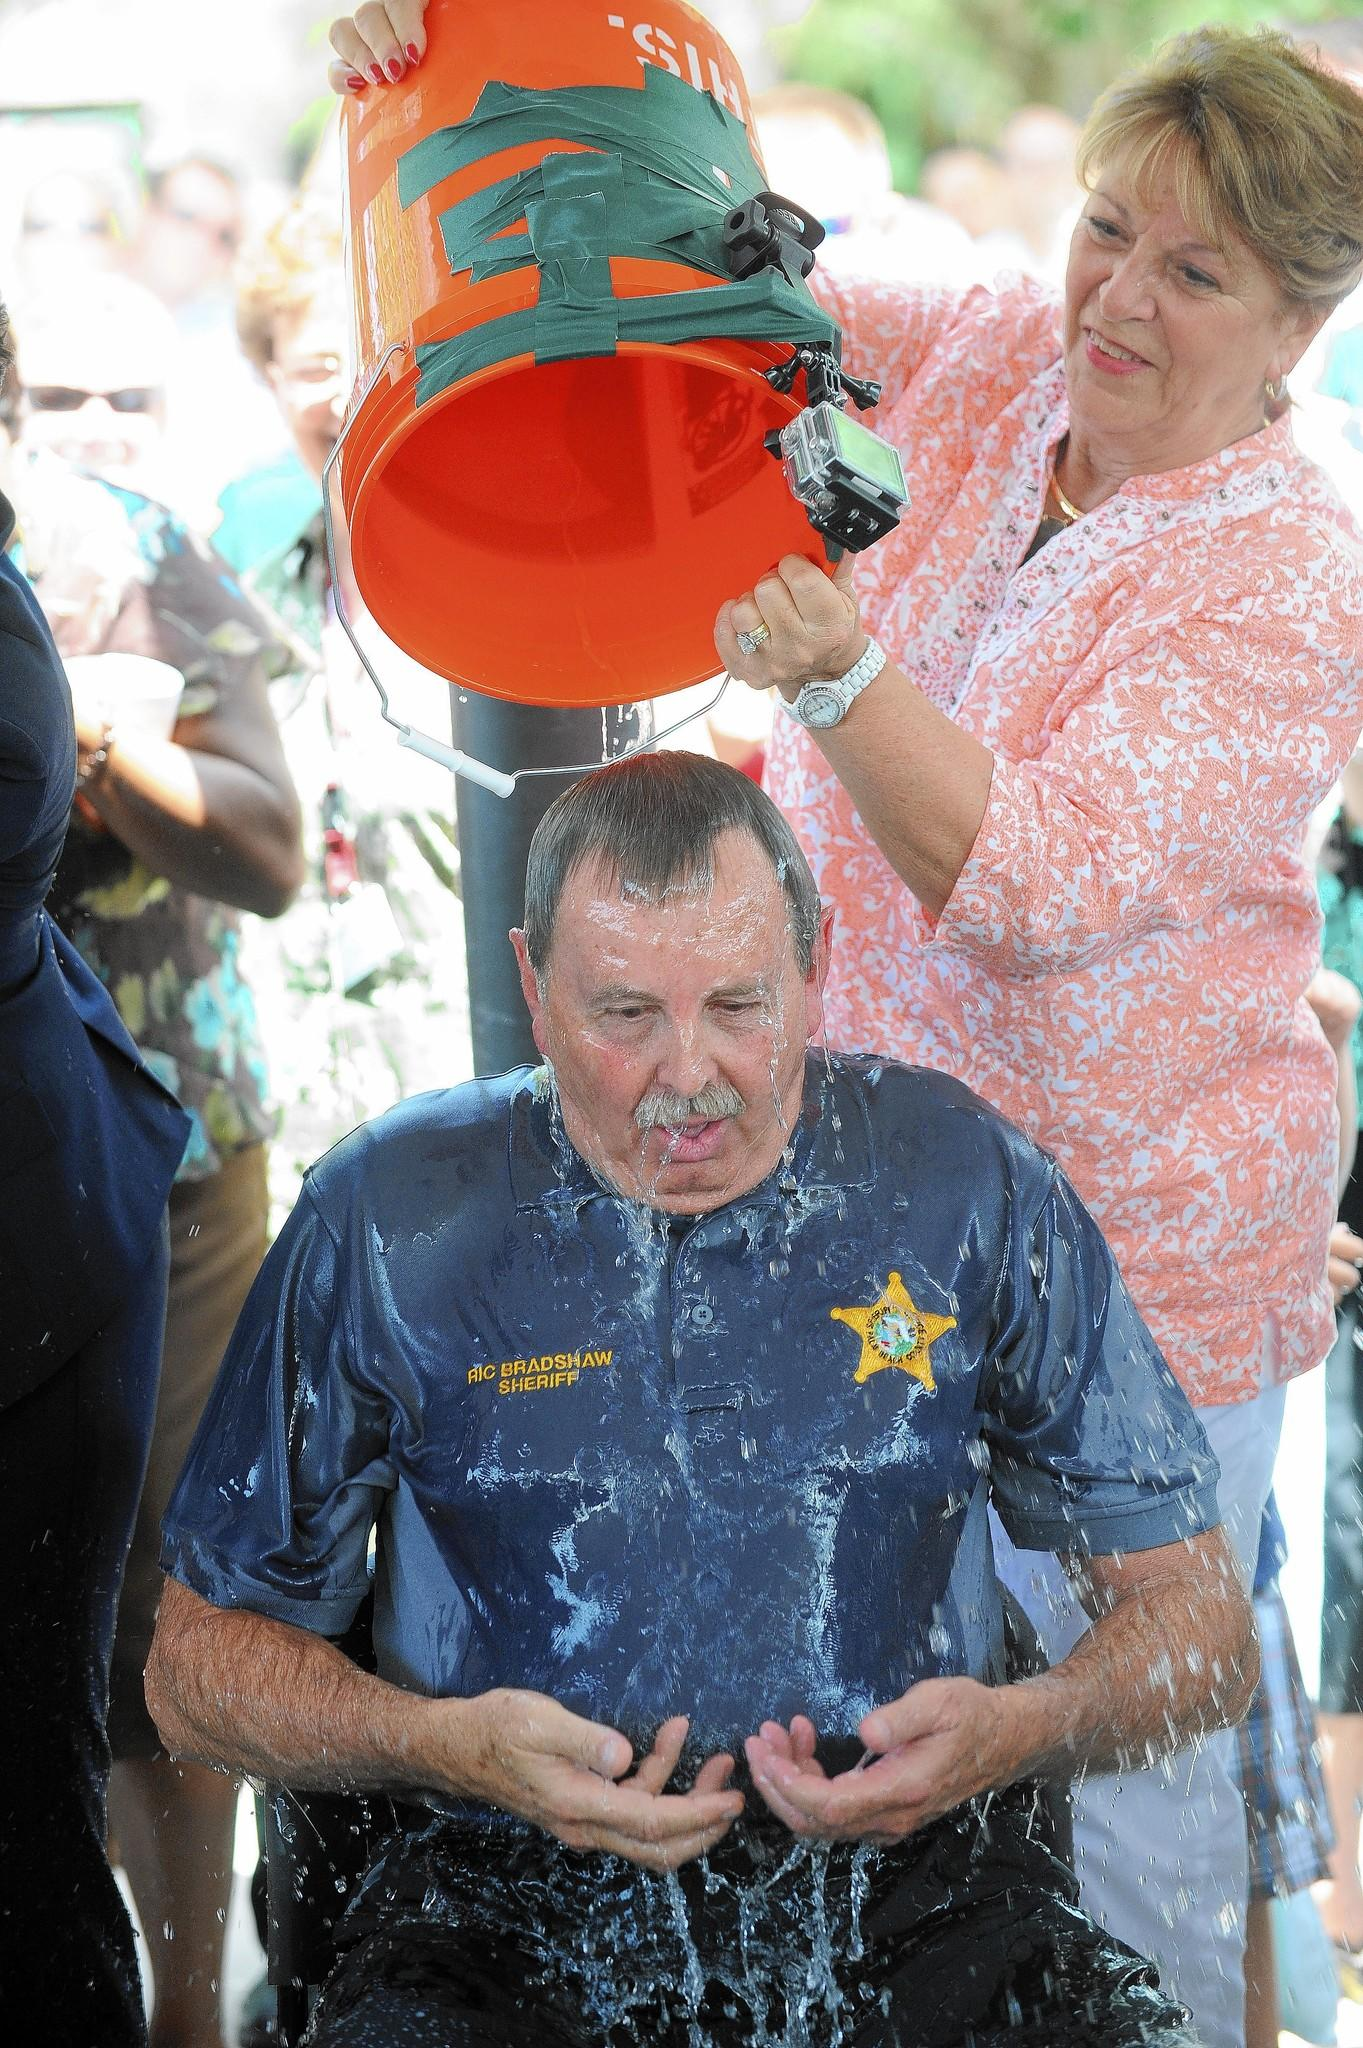 Palm Beach County Sheriff Ric Bradshaw, along with State Attorney Dave Aronberg and Public Defender Carey Haughwout, took the ALS Ice Bucket Challenge at the Palm Beach County Sheriff's Department as a large group of friends, employees and supporters cheered along on Tuesday, August 19th, 2014.